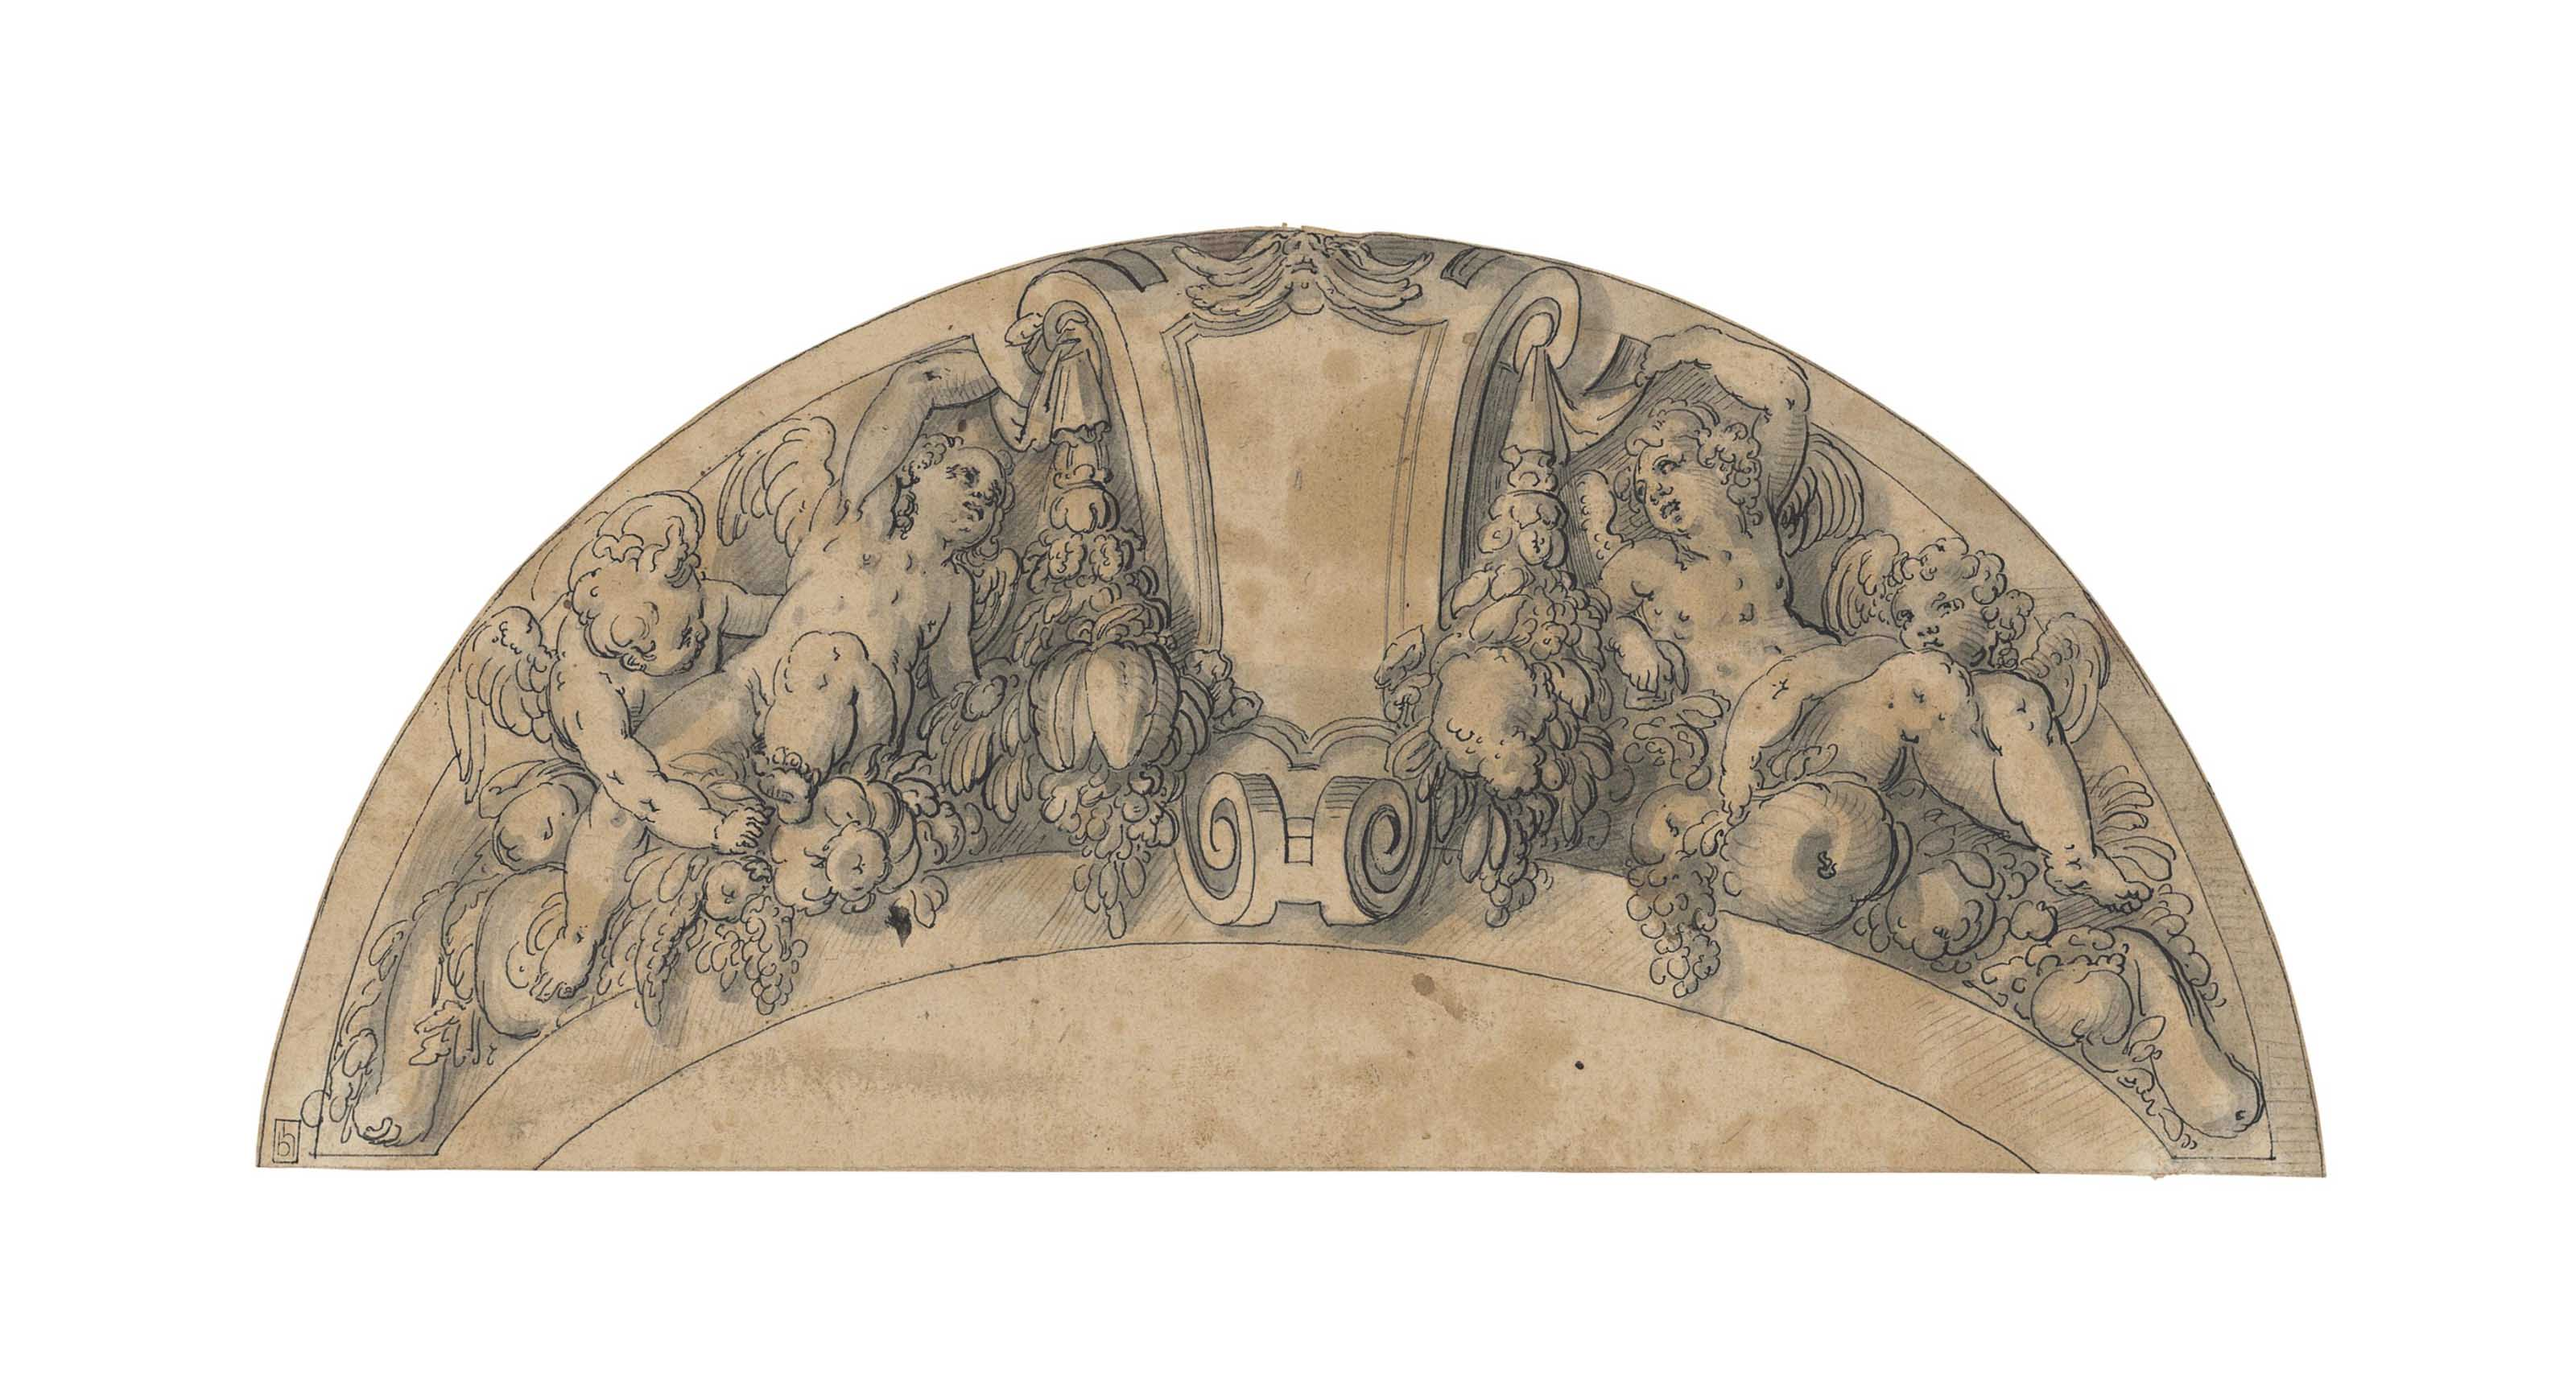 A decorative frieze for an overdoor, with putti and garlands of fruit and vegetables